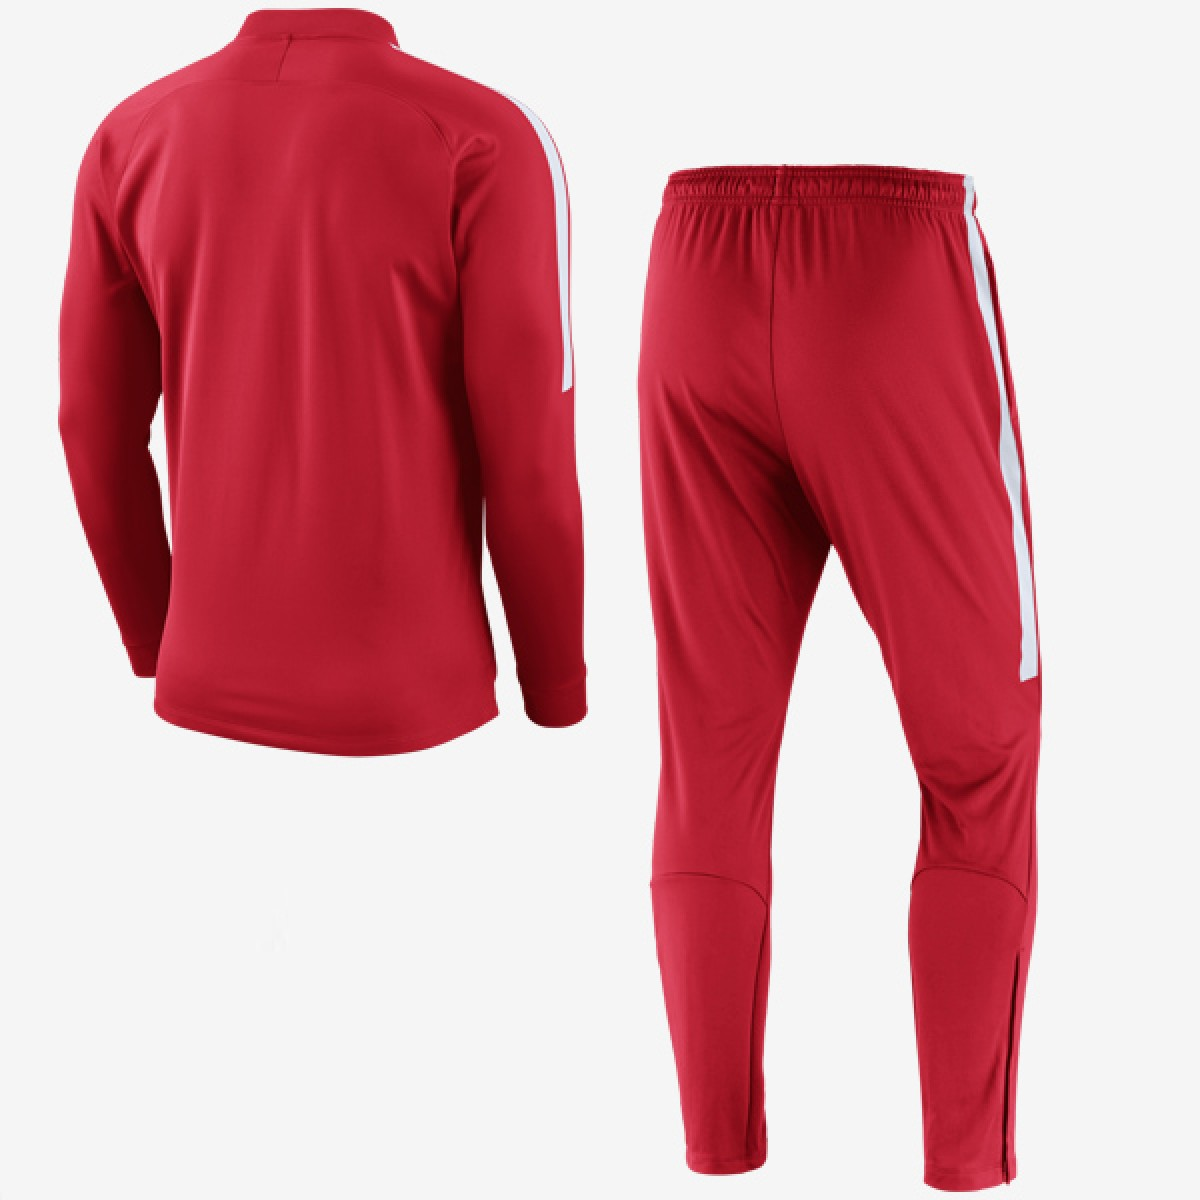 Nike NBA Chicago Bulls Track Suit 'Red' 923080-657